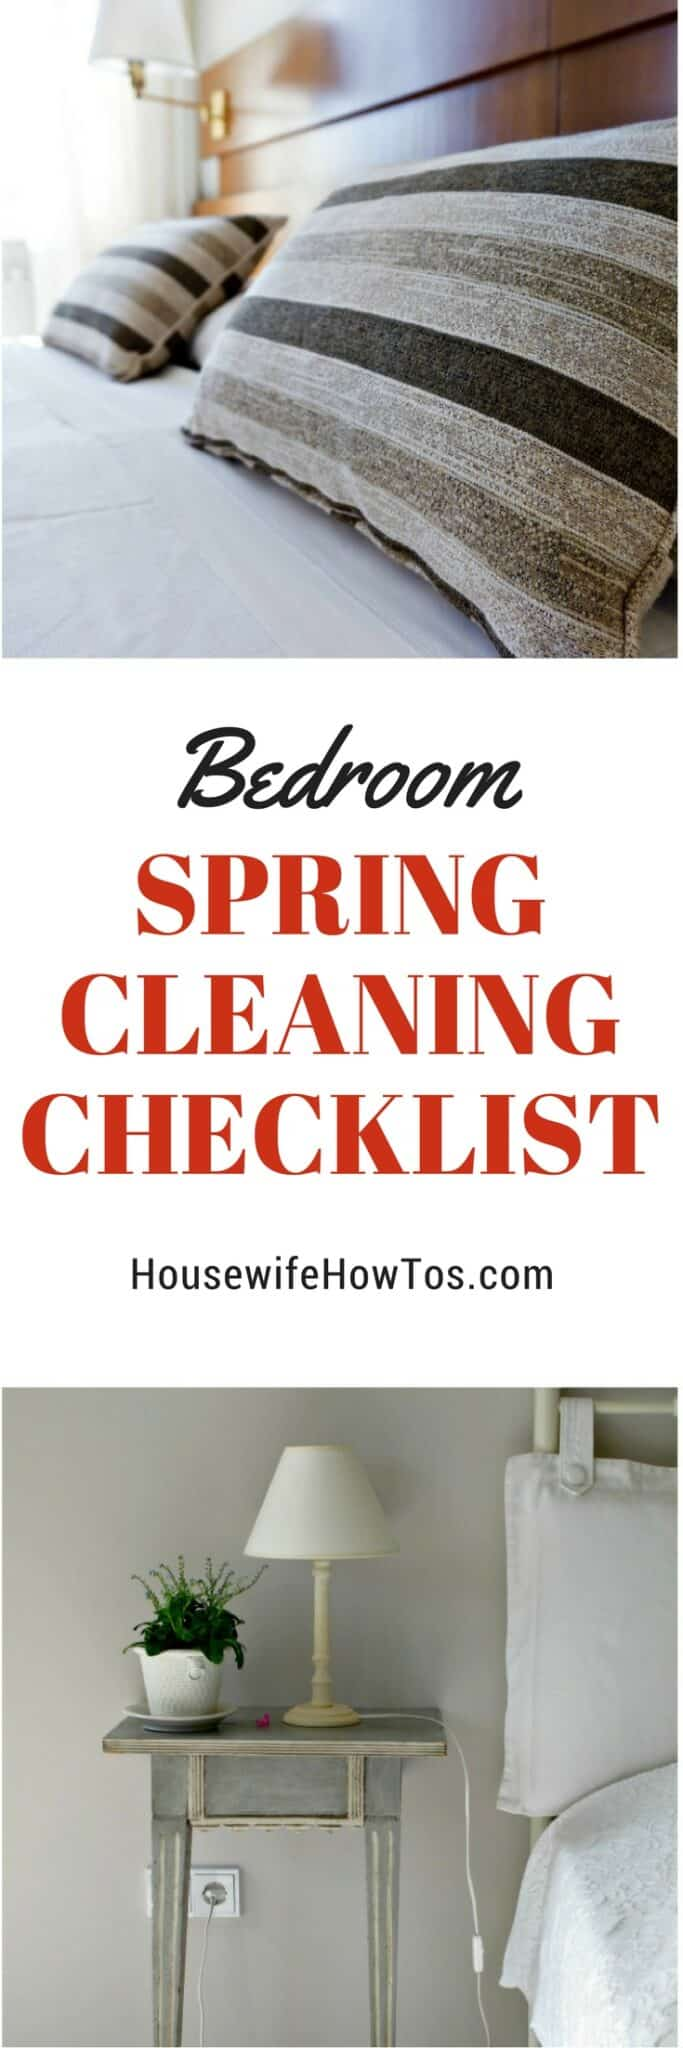 Bedroom Spring Cleaning Checklist - This is so thorough!